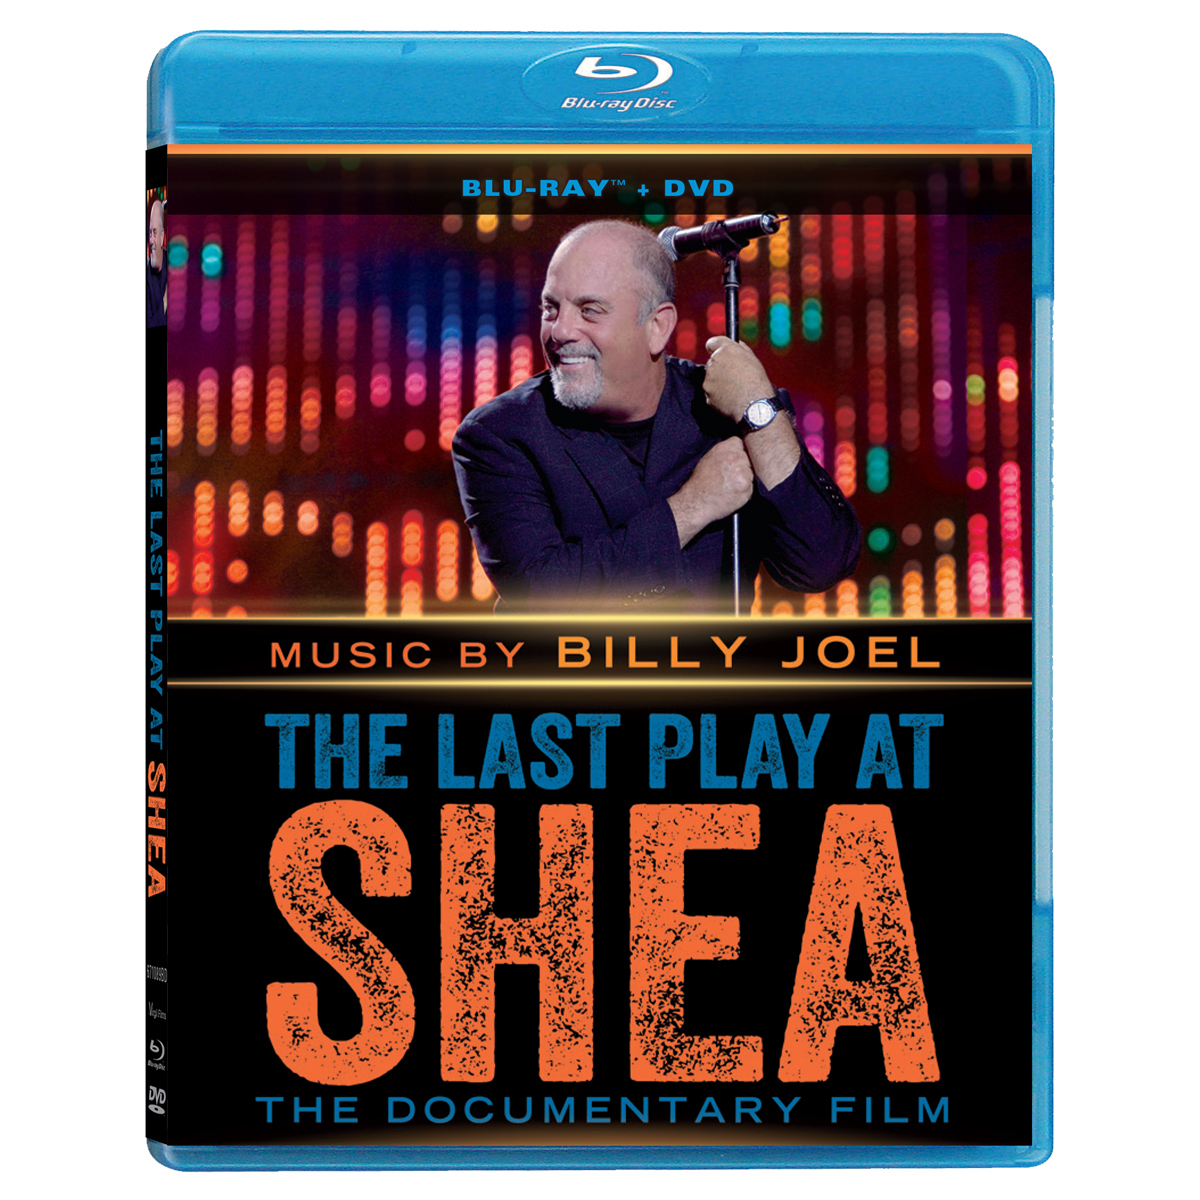 Billy Joel: The Last Play at Shea The Documentary Film Blu-ray/DVD